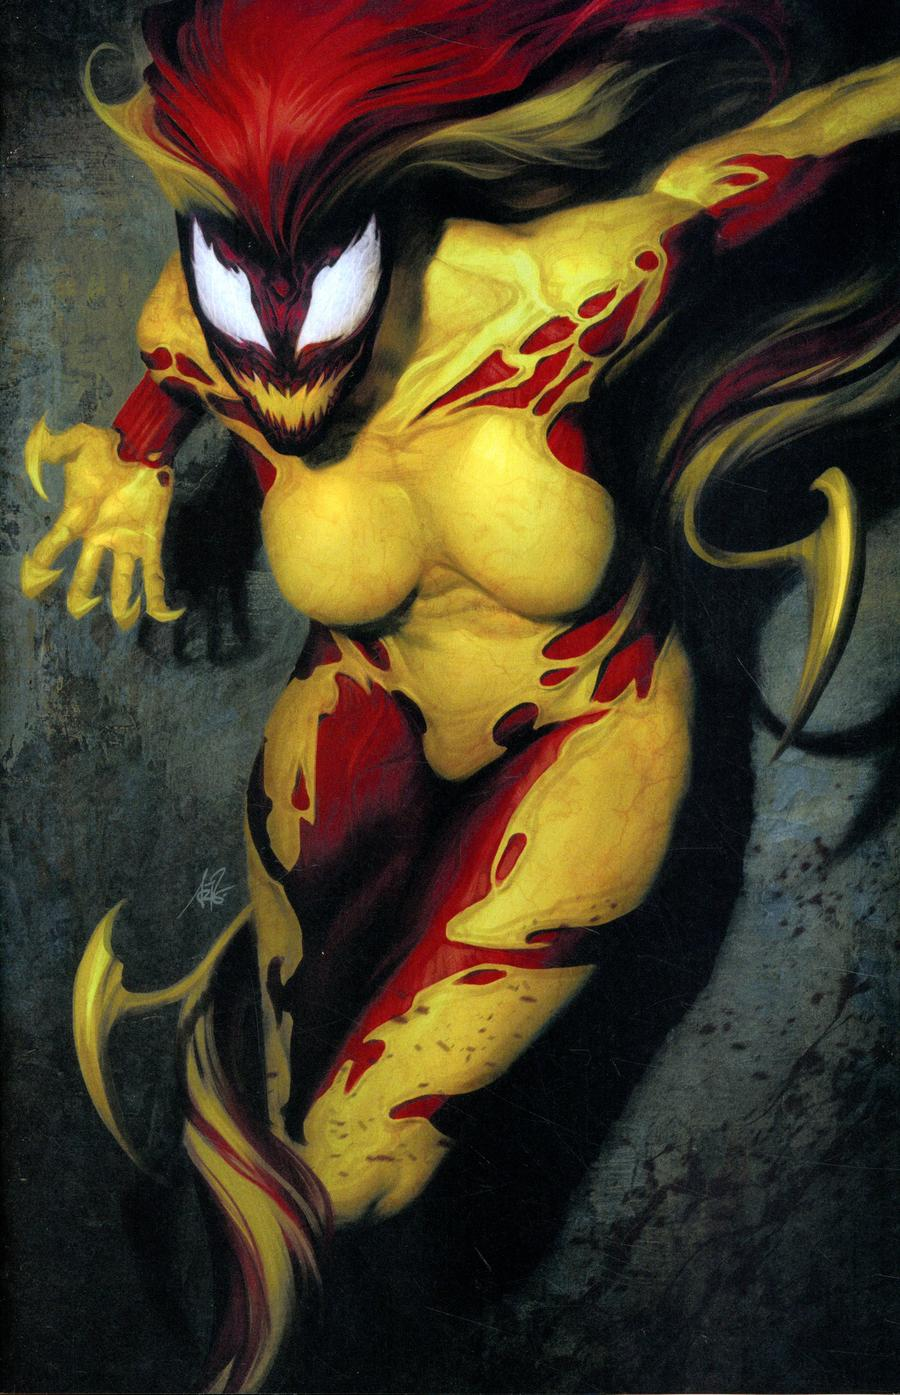 Scream Curse Of Carnage #1 Cover F Incentive Stanley Artgerm Lau Virgin Variant Cover (Absolute Carnage Tie-In)